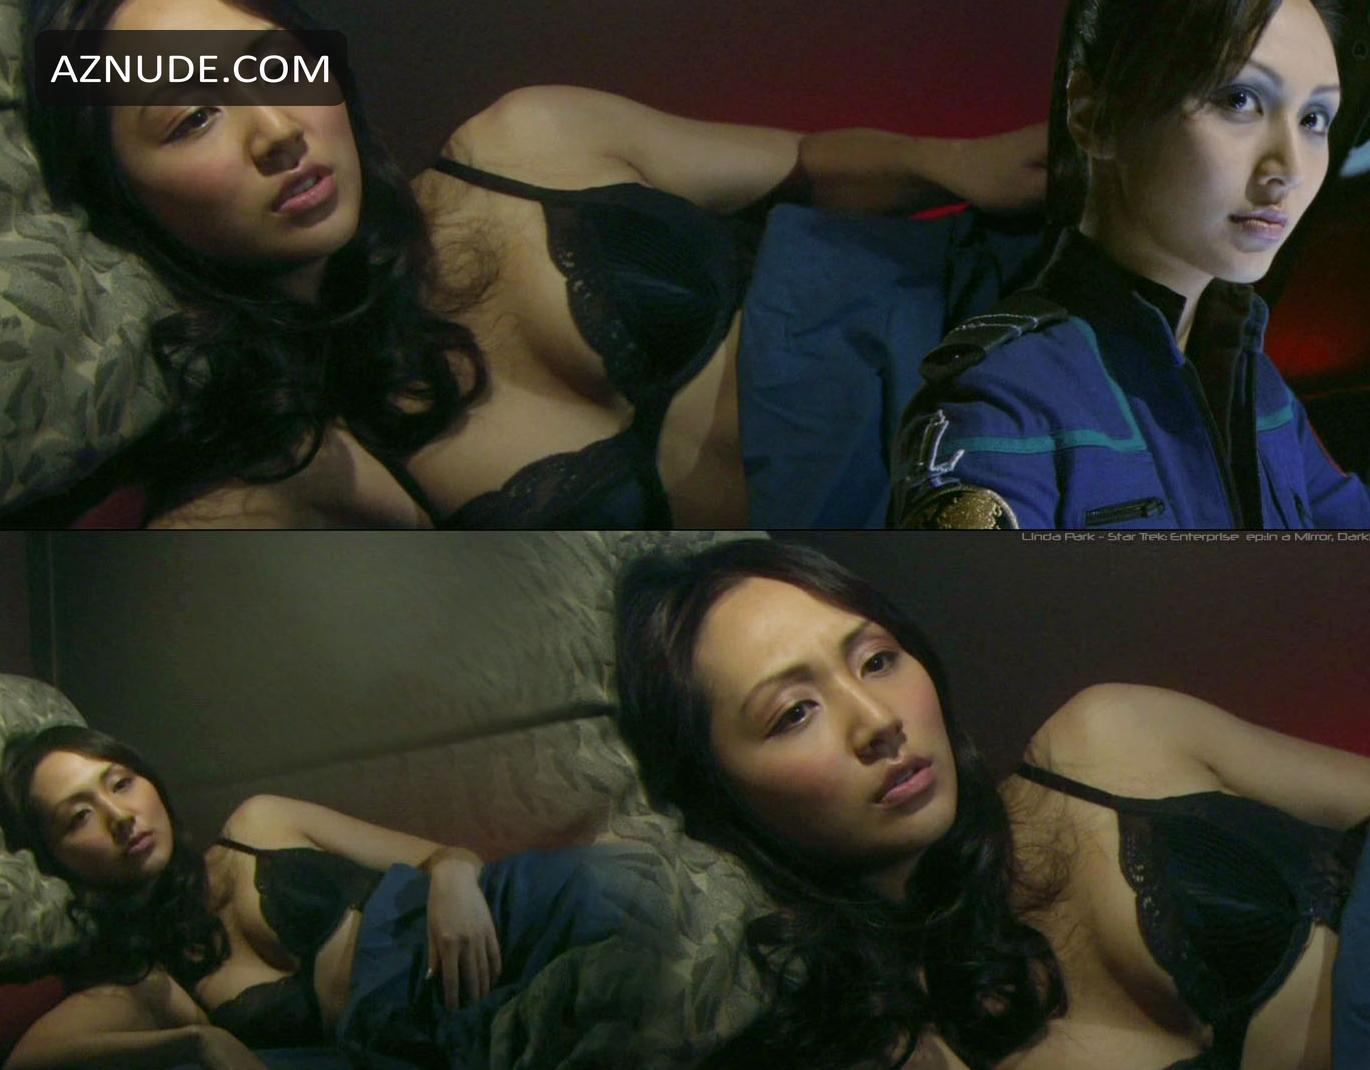 Linda Park Free Sex Videos - Watch Beautiful and